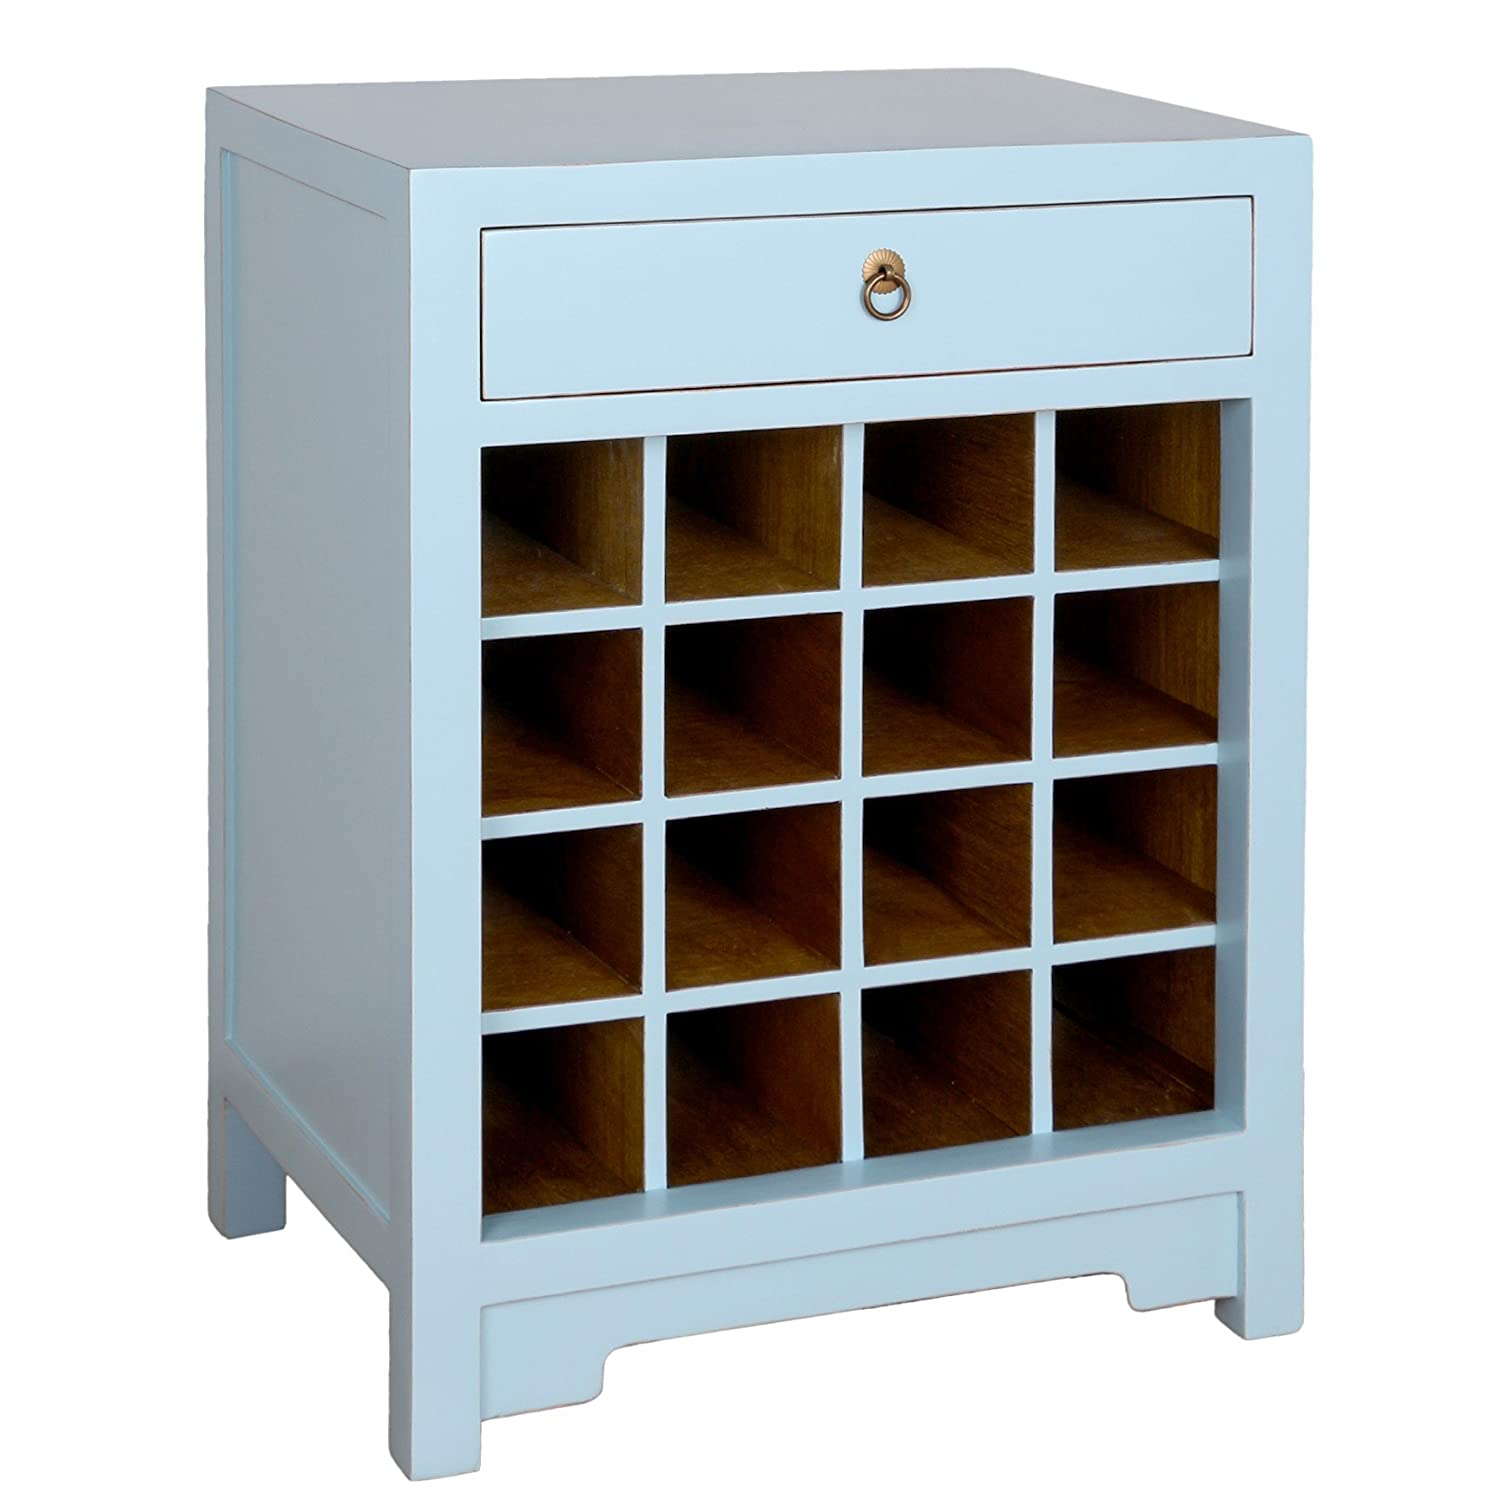 Porthos Home CB088A AQU Chauvet Wine Cabinet Aqua Antique Revival